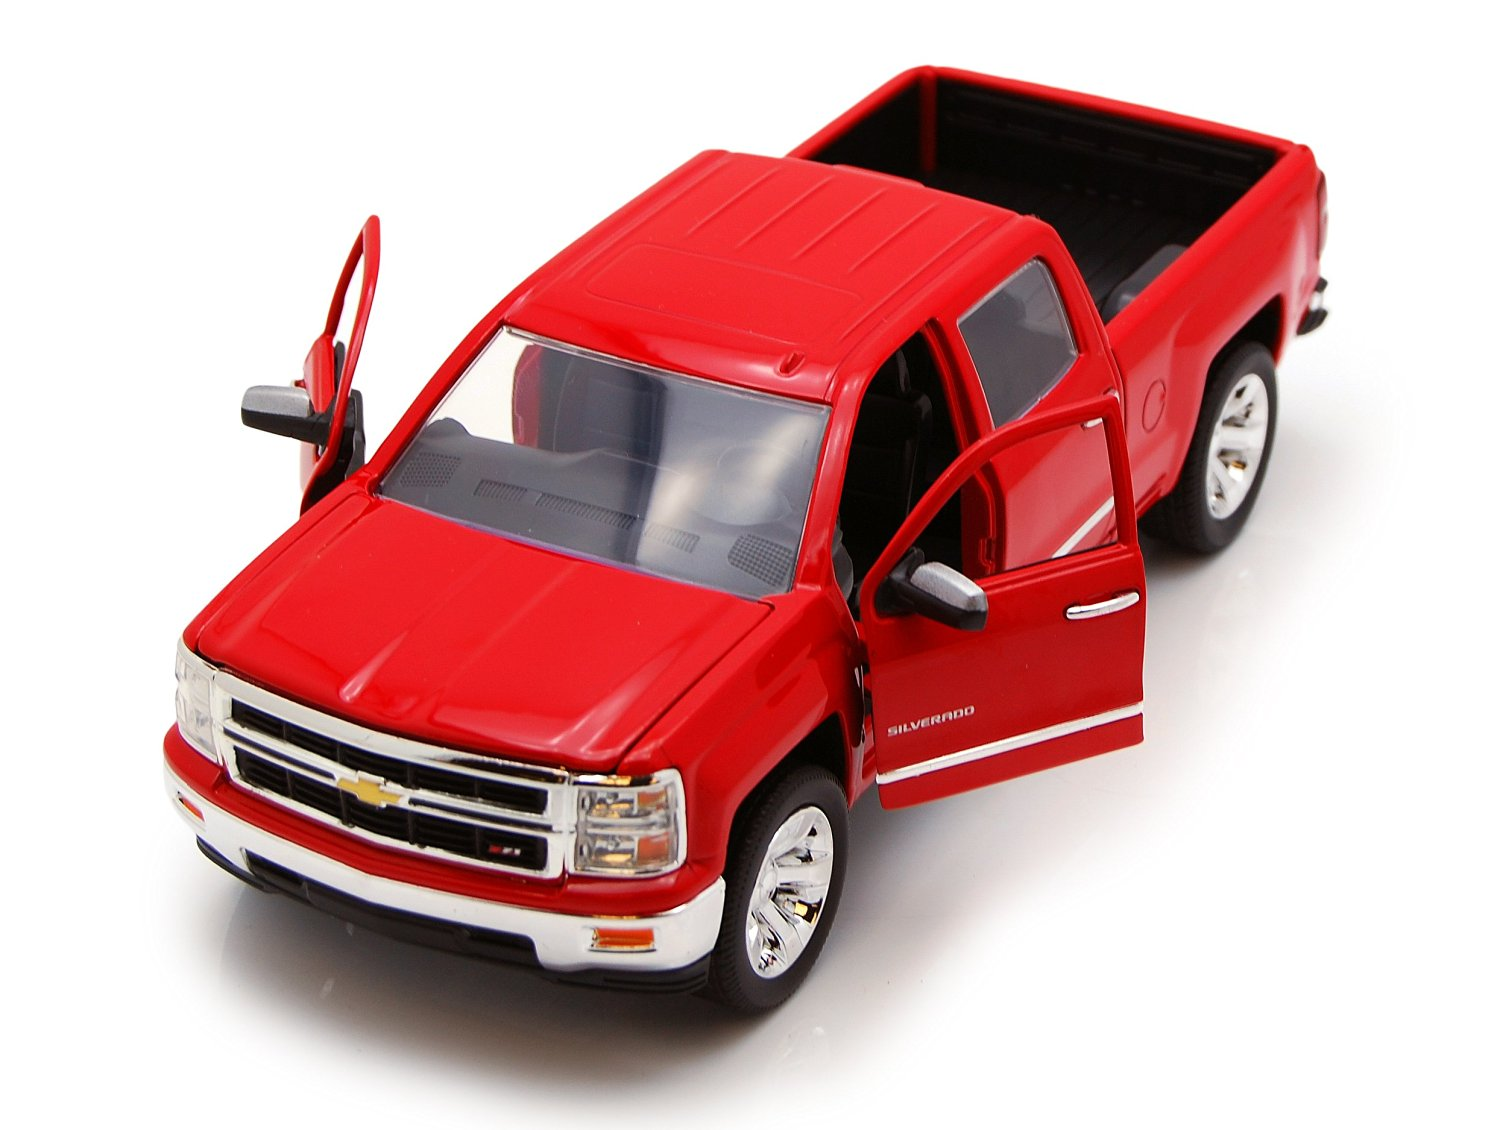 Chevy Silverado Pickup Truck, Red - Jada Toys Just Trucks 97018 - 1/24 scale Diecast Model Toy Car